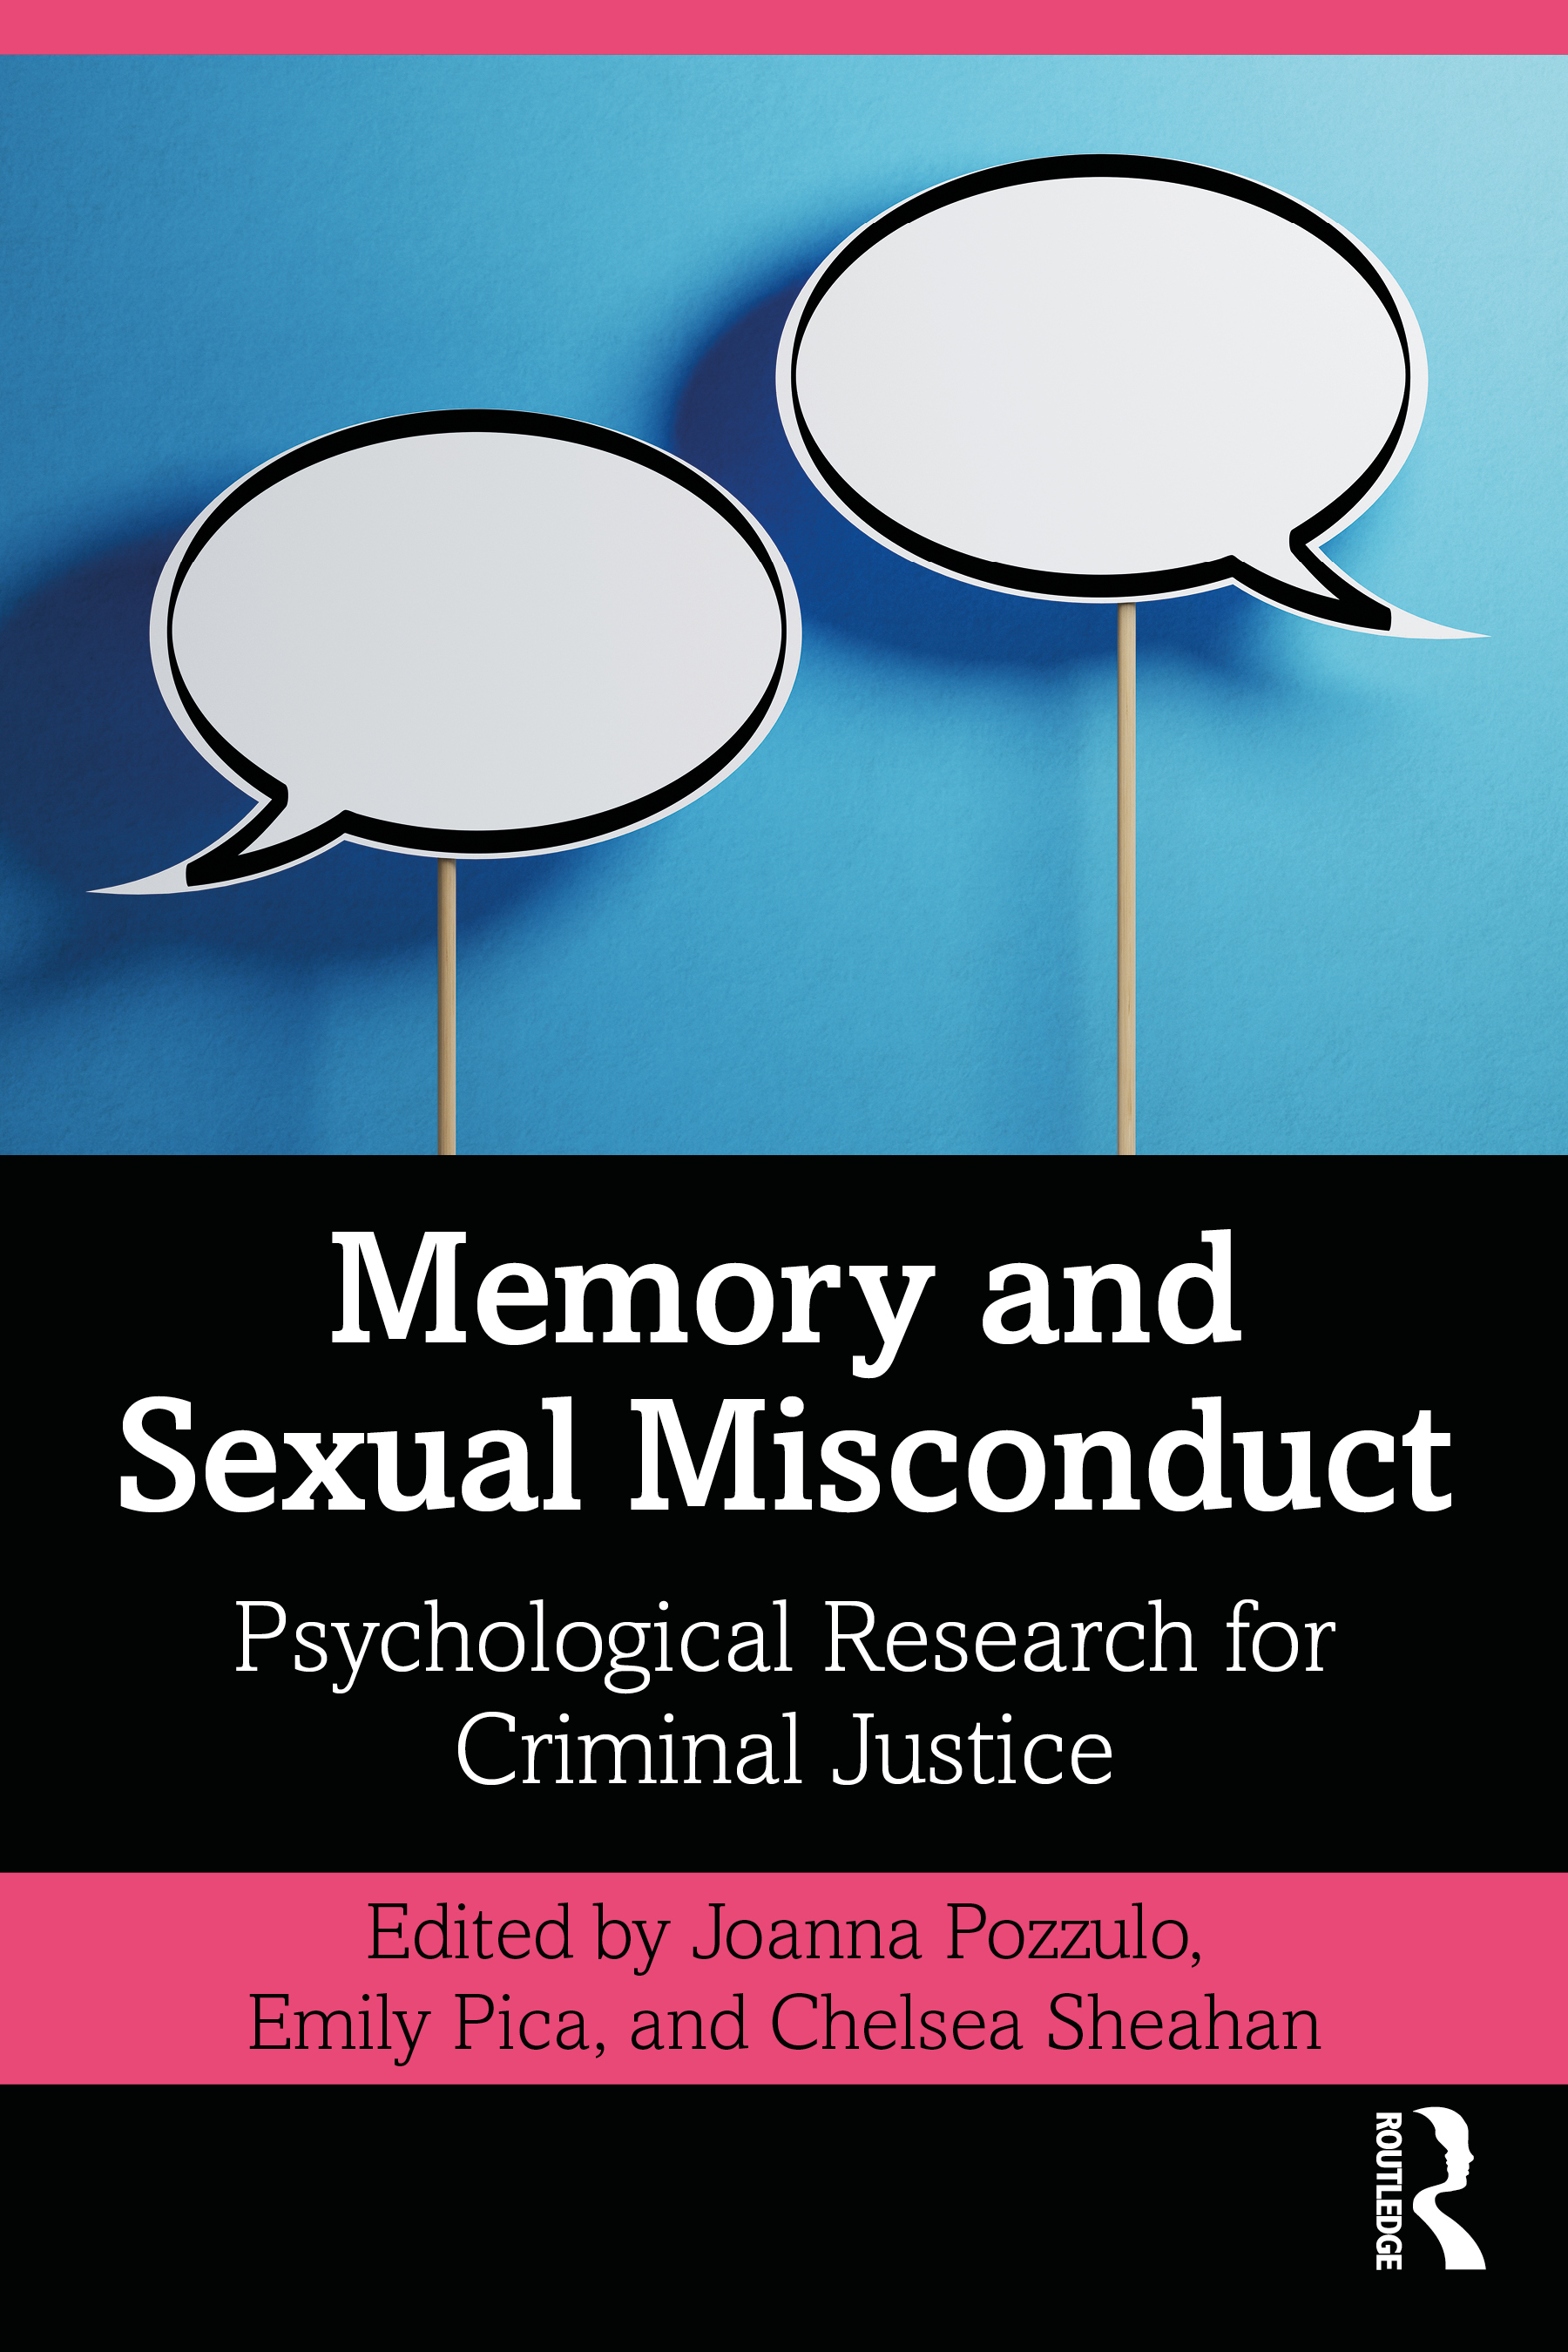 Memory and Sexual Misconduct: Psychological Research for Criminal Justice book cover